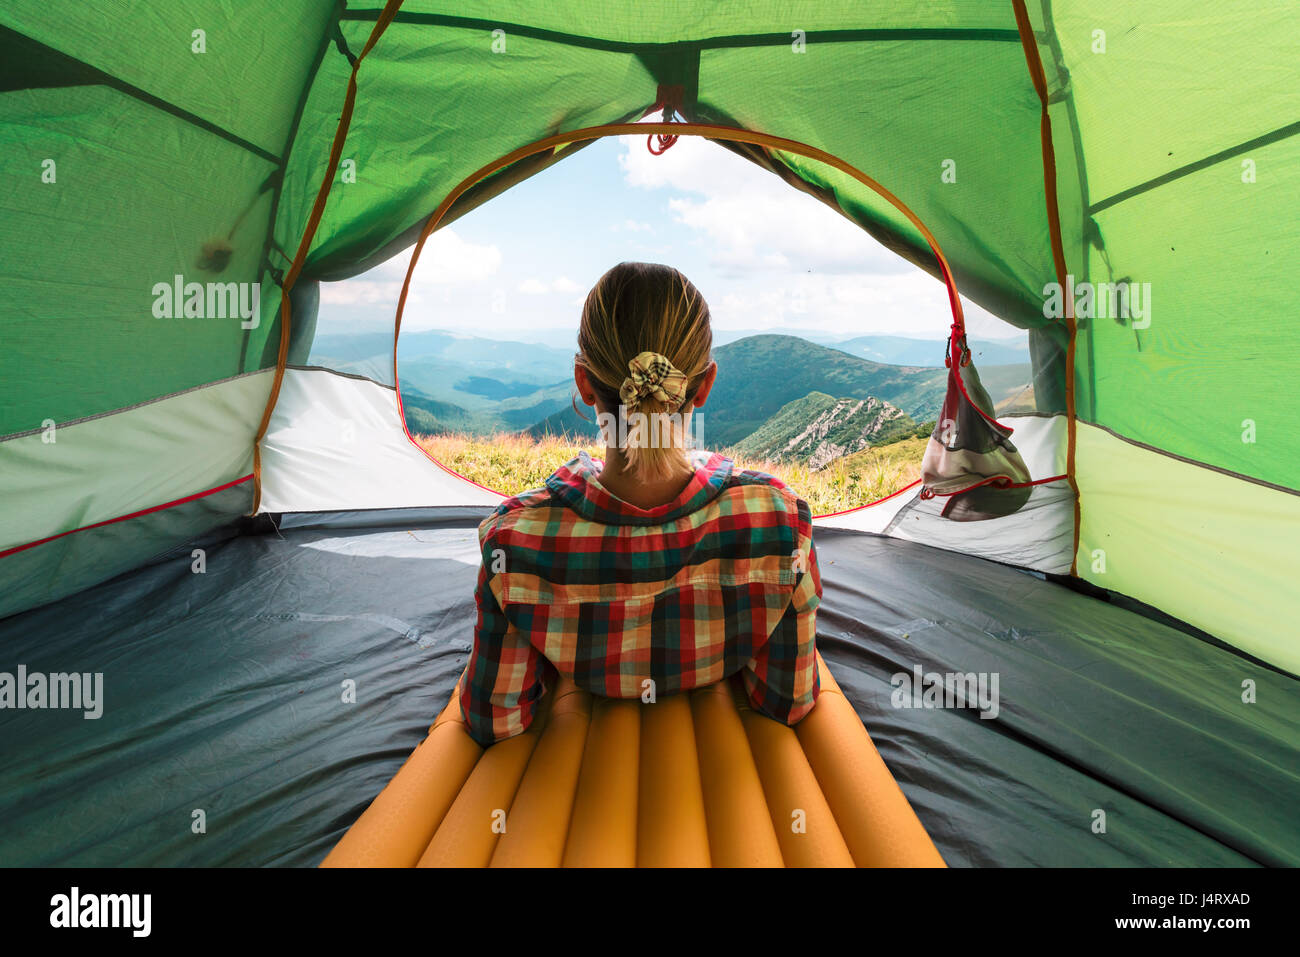 Girl sitting in they tent against the backdrop of an incredible mountain landscape. Sunny day in highland - Stock Image